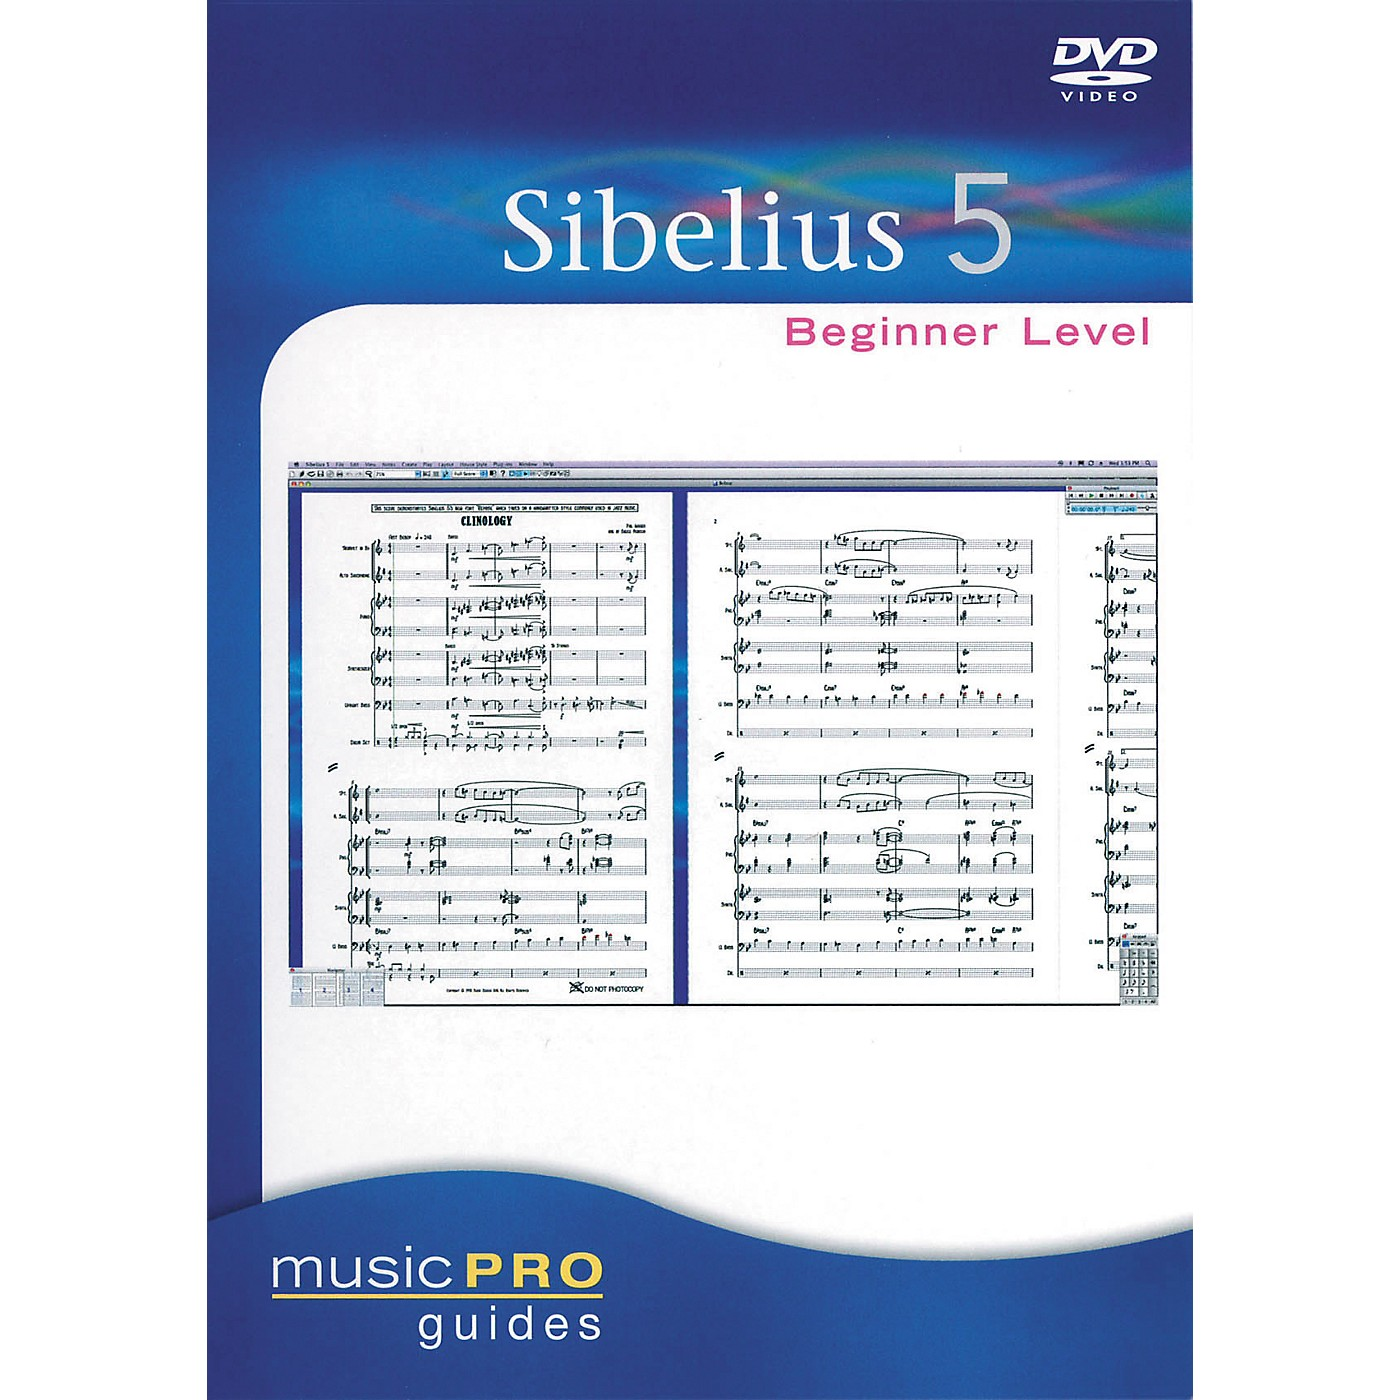 Hal Leonard Sibelius 5 Beginner Level - Music Pro Guides Series (DVD) thumbnail